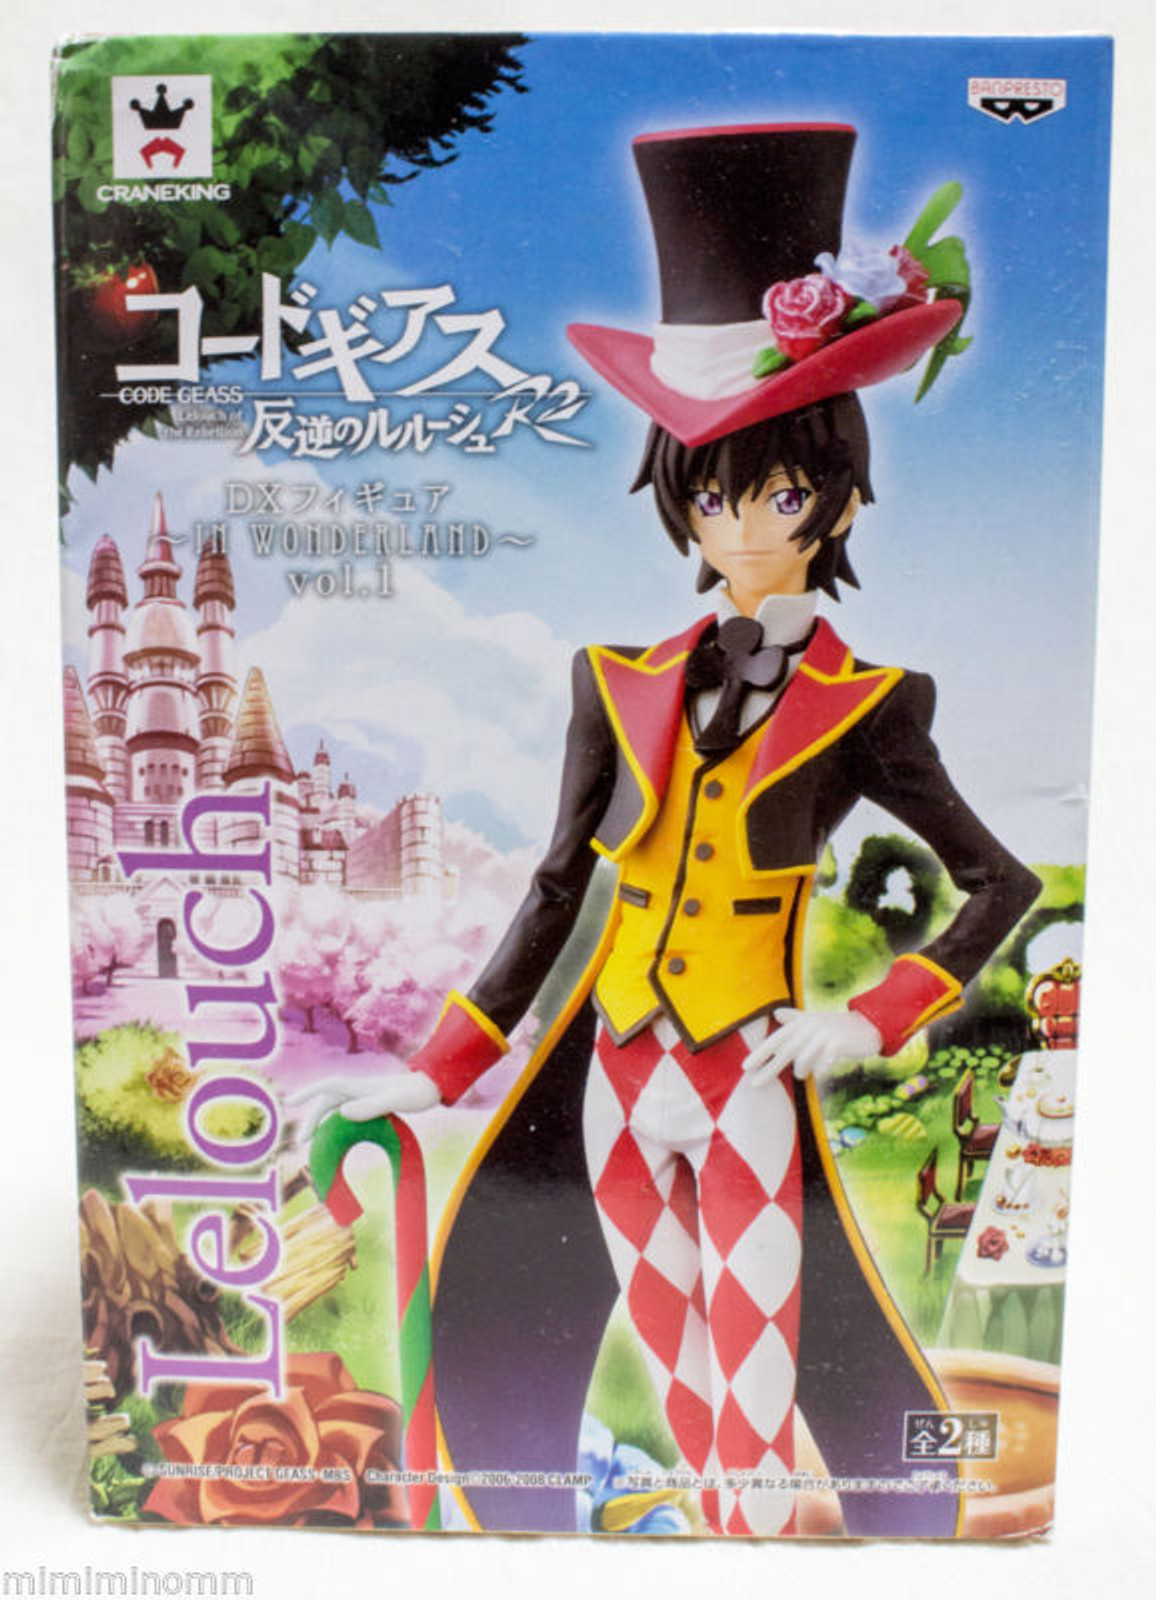 Code Geass R2 Lelouch Lamperouge DX Figure In Wonderland Vol.1 Banpresto  JAPAN